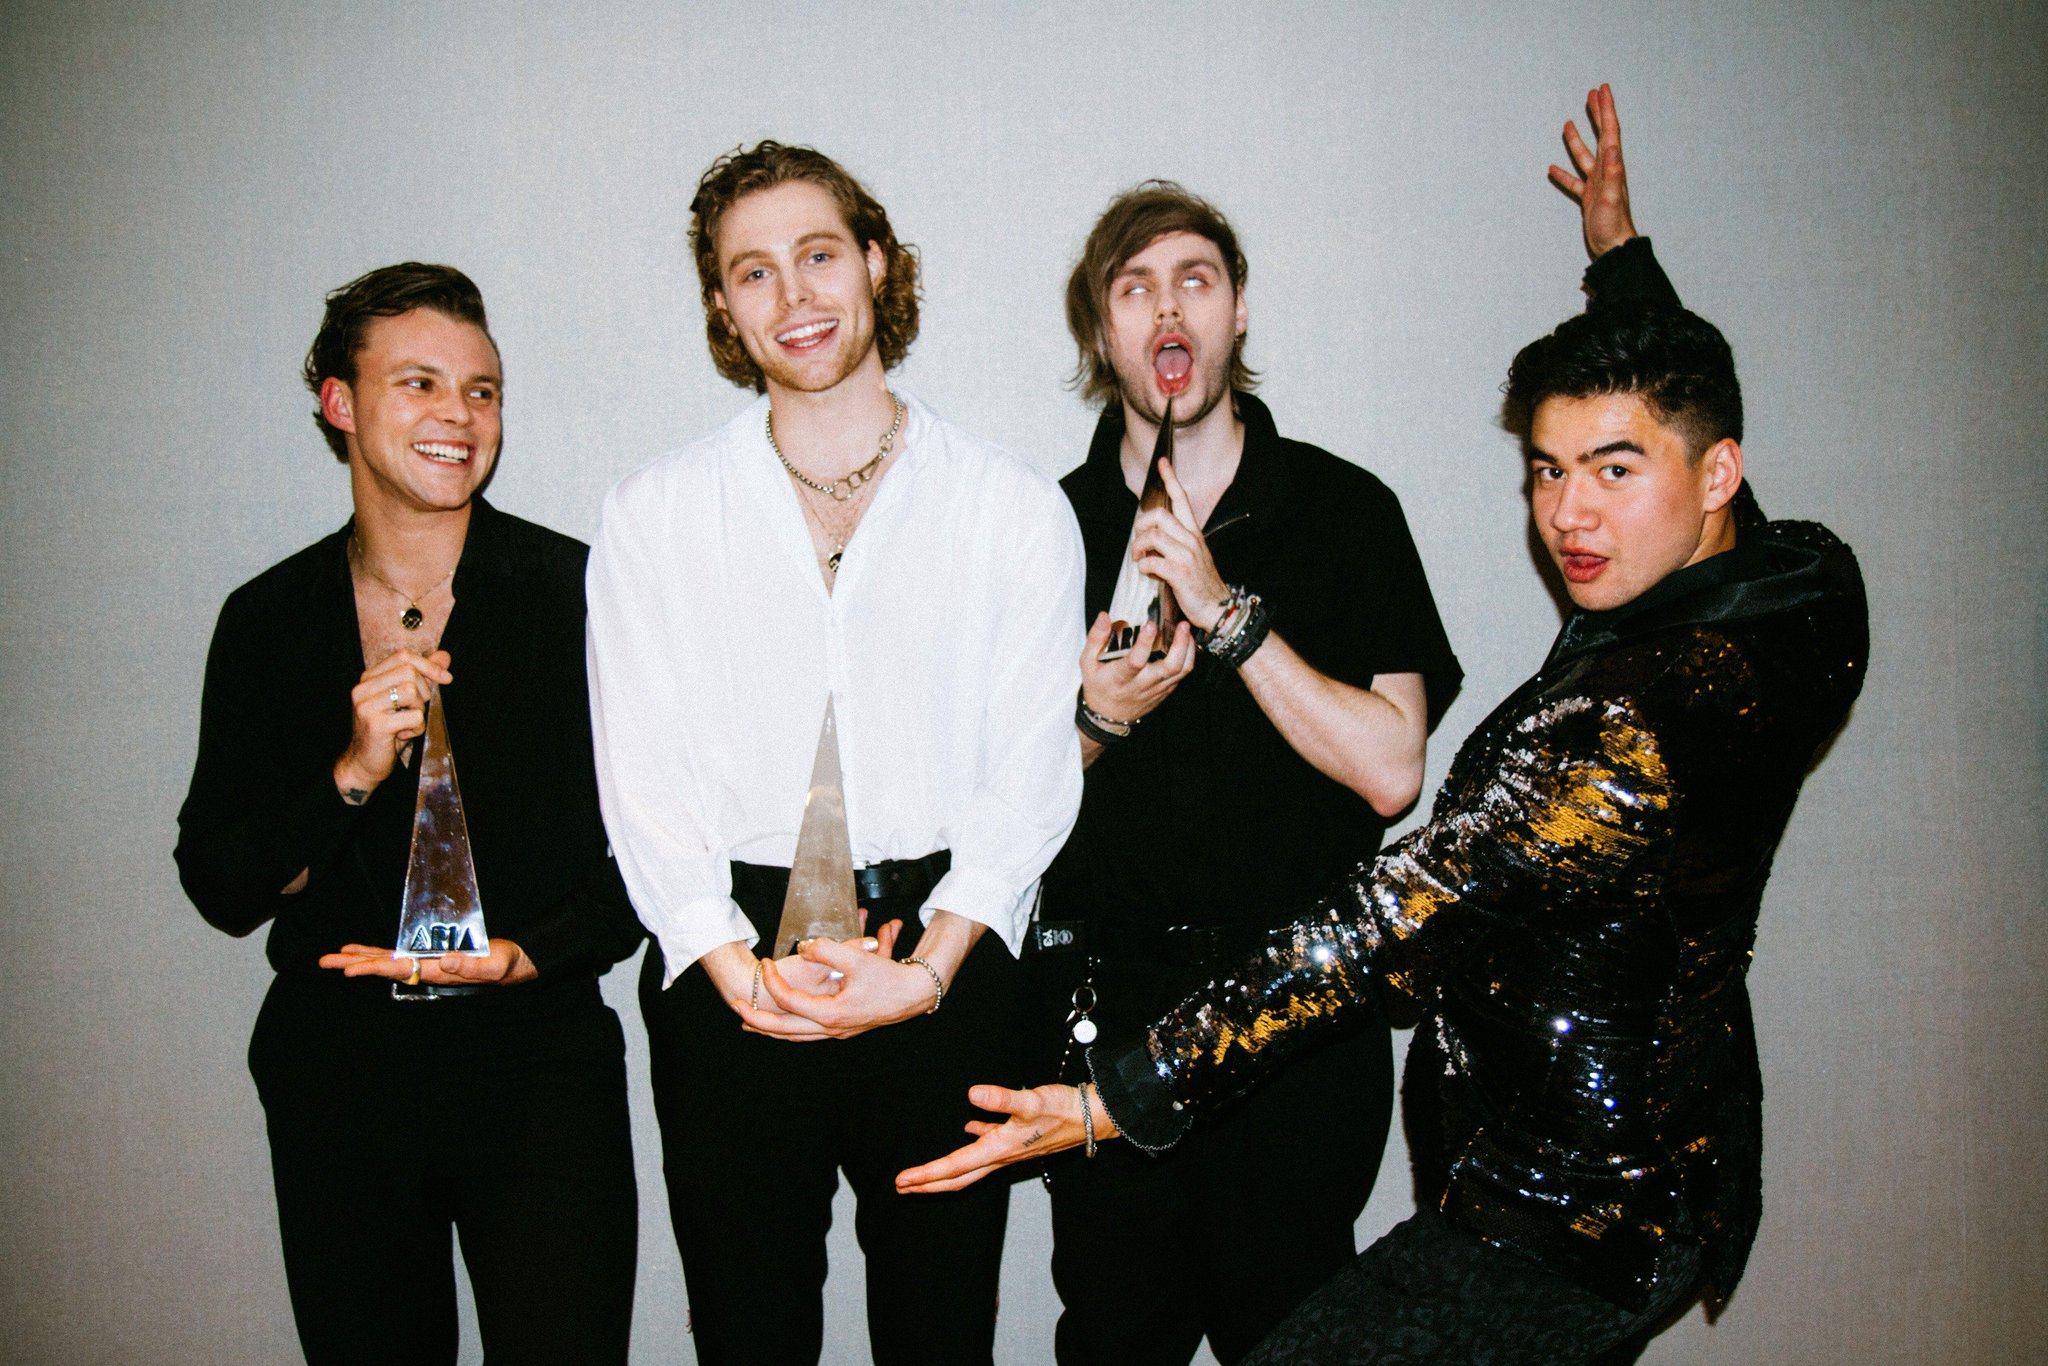 5 Seconds Of Summer On Twitter Quot 5sos X Aria S Thank